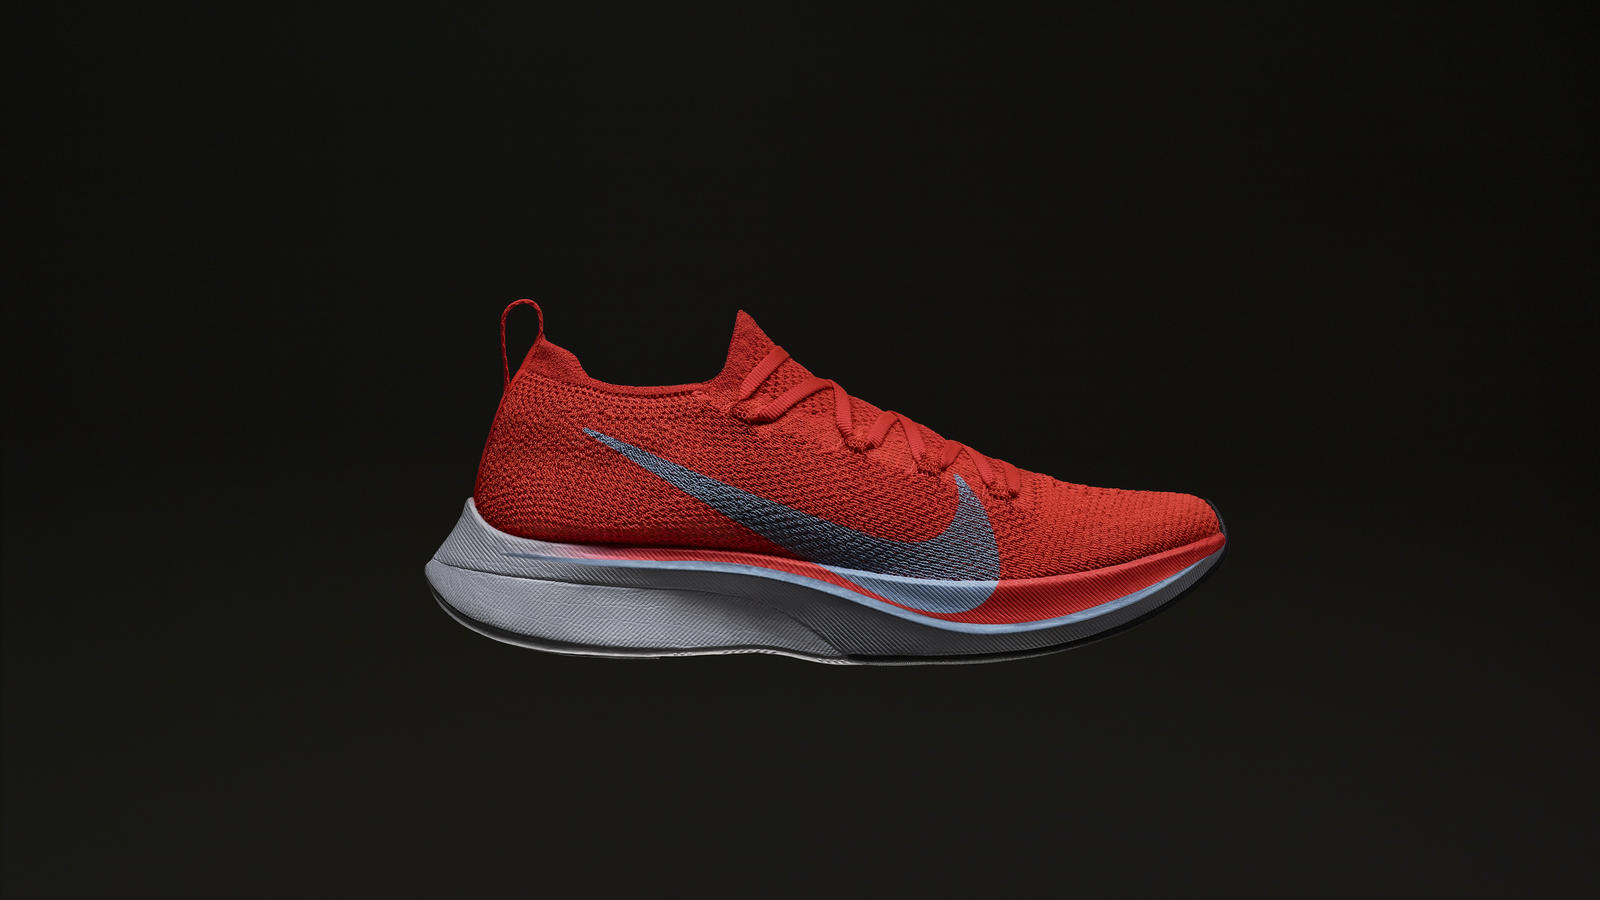 278e5fb48ac7c Should Nike s Zoom Vaporfly 4% be legal  - Sweat Elite